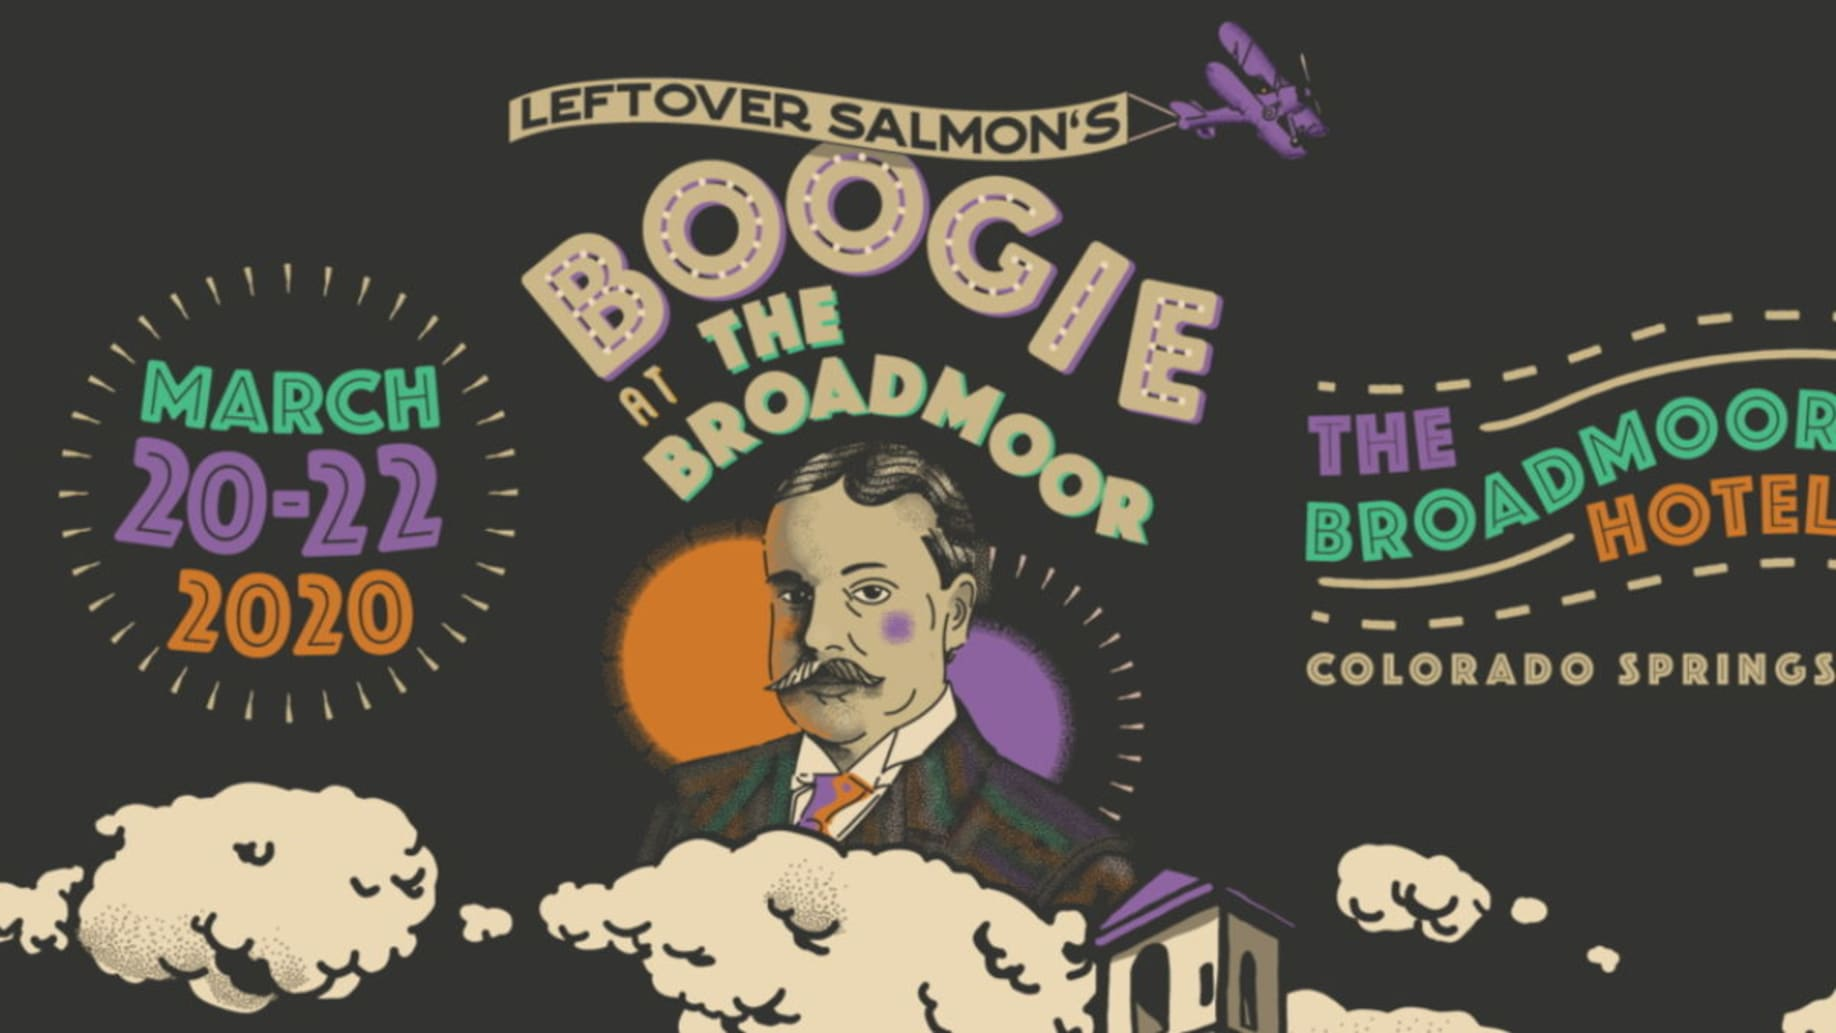 Christmas At The Broadmoor 2020 Leftover Salmon Announces 2020 Boogie At The Broadmoor Lineup